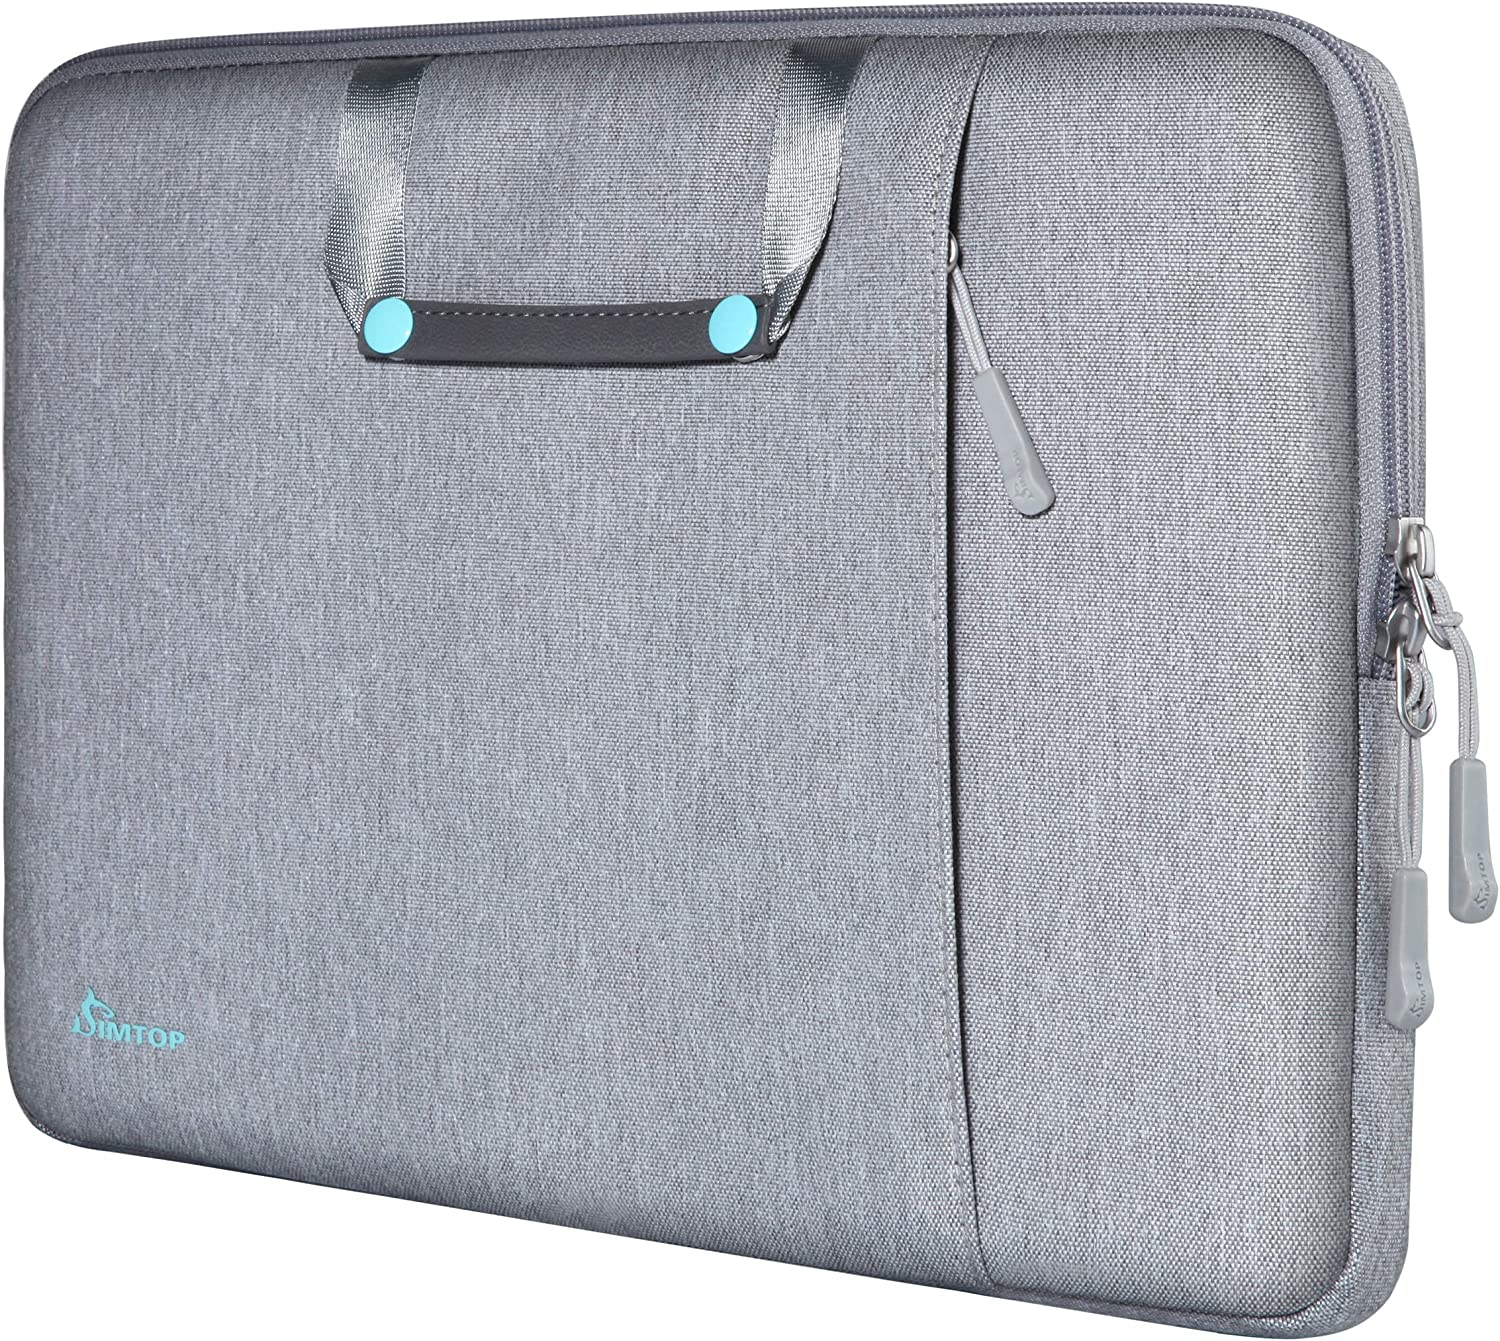 SIMTOP 15.6 Inch Laptop Sleeve Briefcase Bag for 15.6